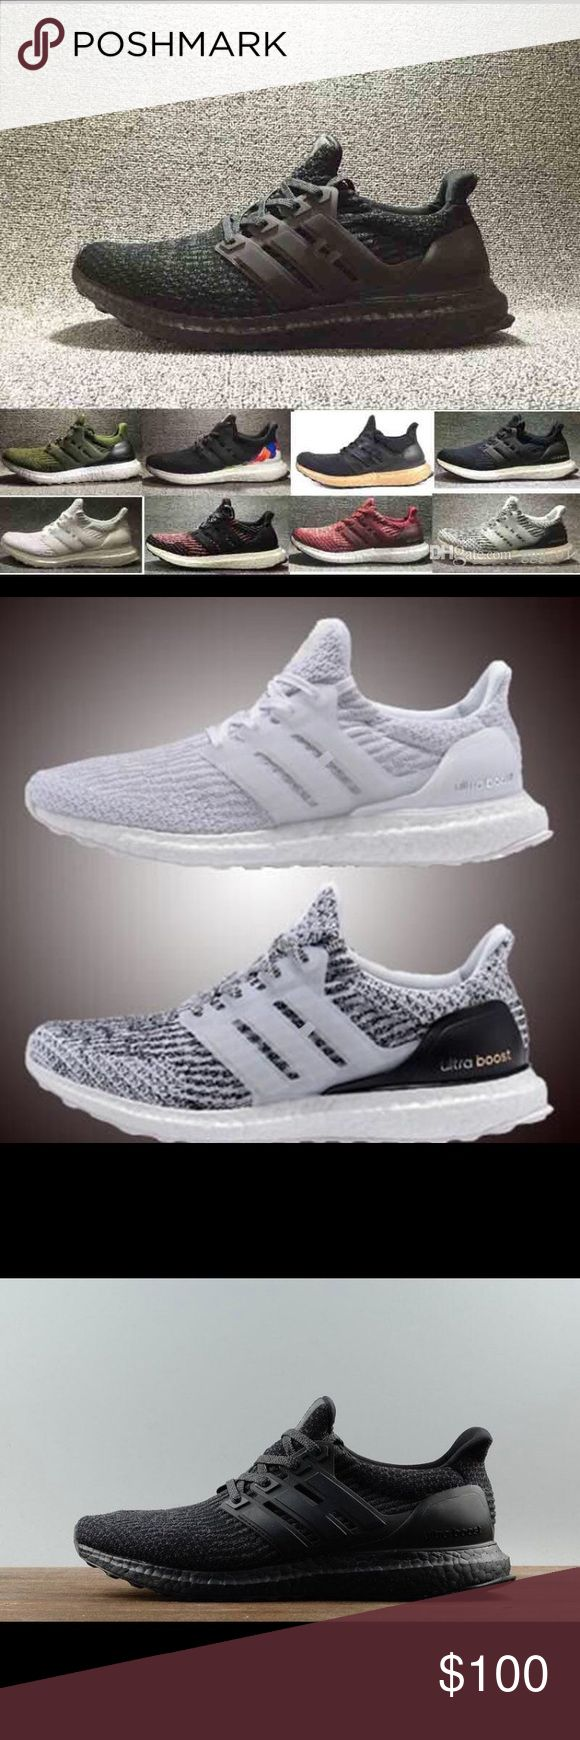 Adidas Ultra Boost Many different ultra boost for sale! Items are not authentic but look identical! Contact me at (845) 490-4638 before purchasing to let me know what color and size you would like. The shoes come in all sizes and if you would like a color scheme that's not there I can most likely find it!! The shoes will take 2-4 weeks to ship NOT 1 week! adidas Shoes Athletic Shoes